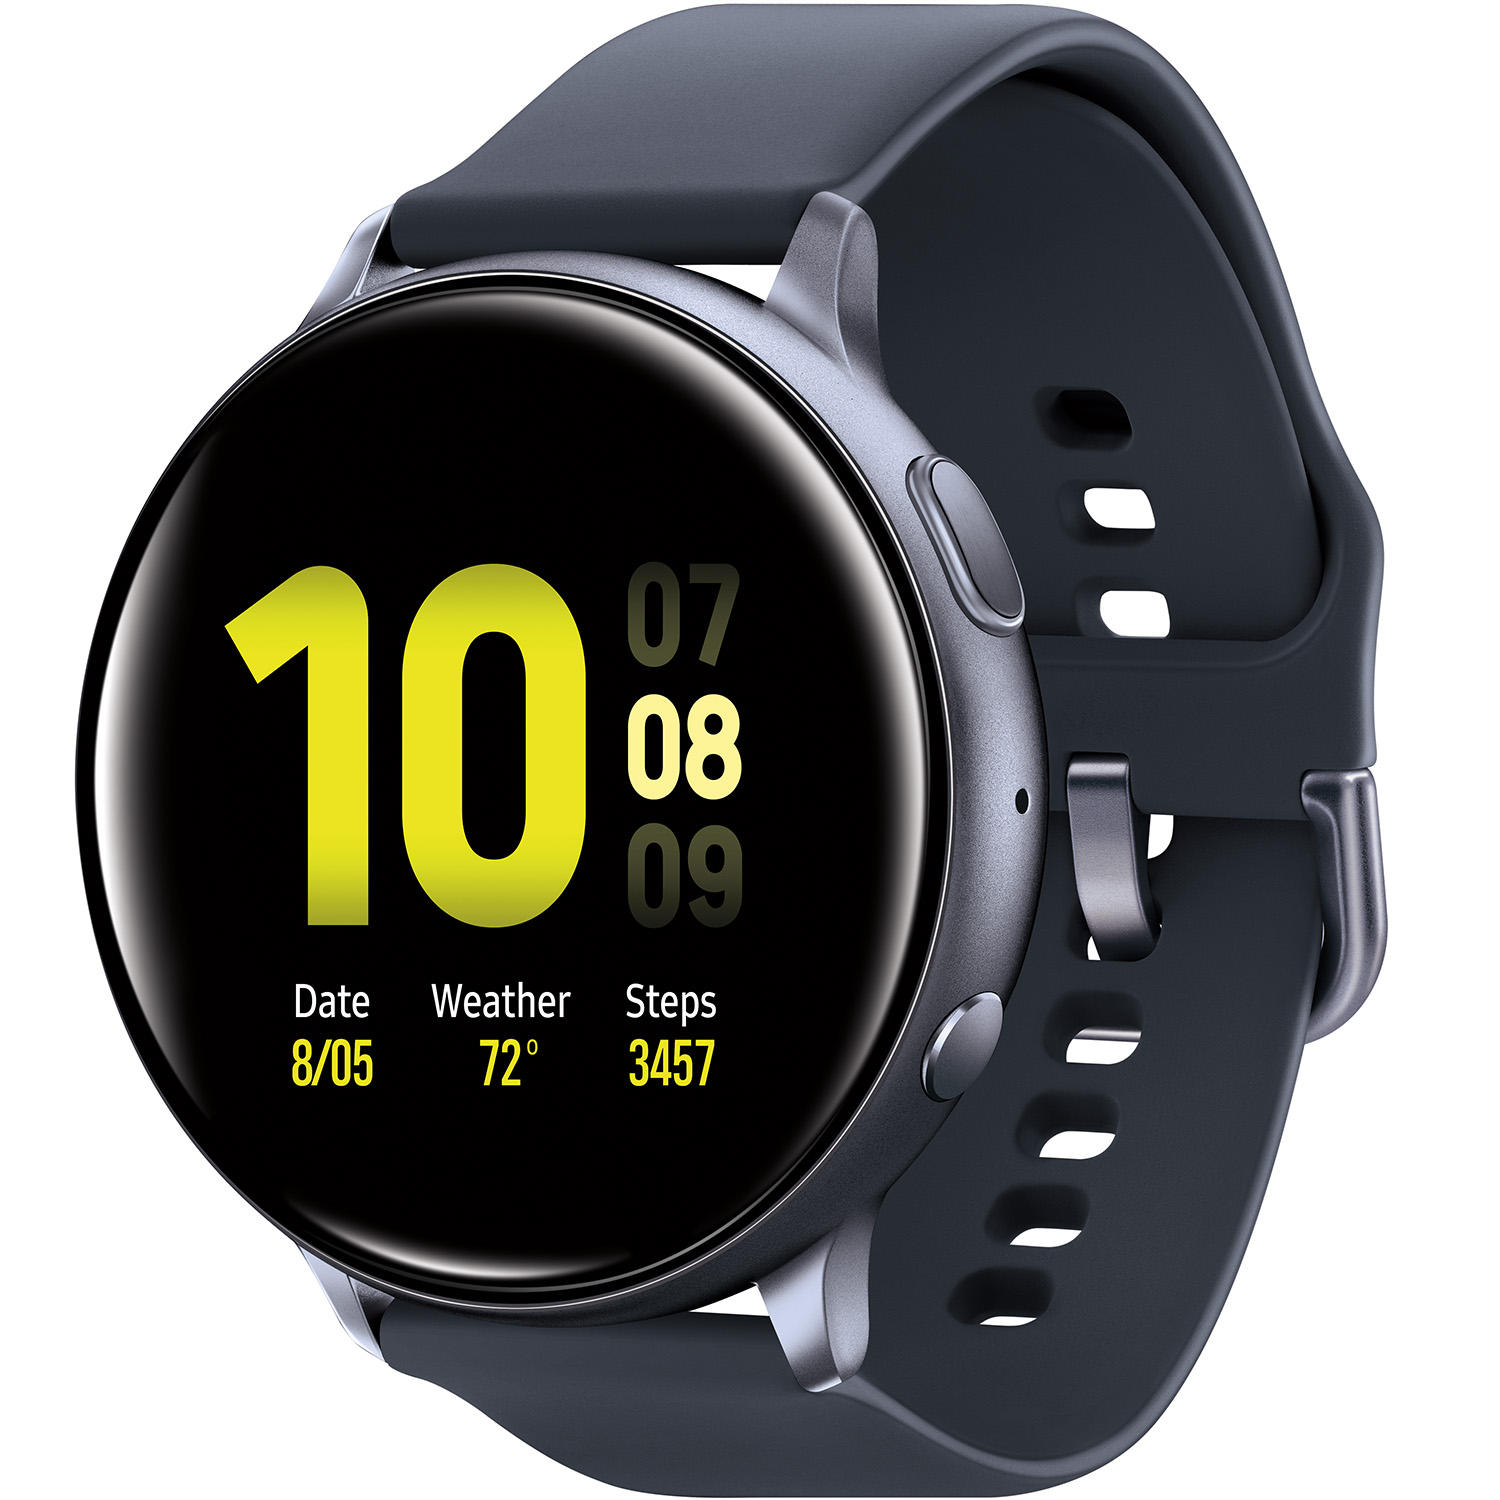 SAMSUNG Galaxy Active2 Smart Watch 40mm